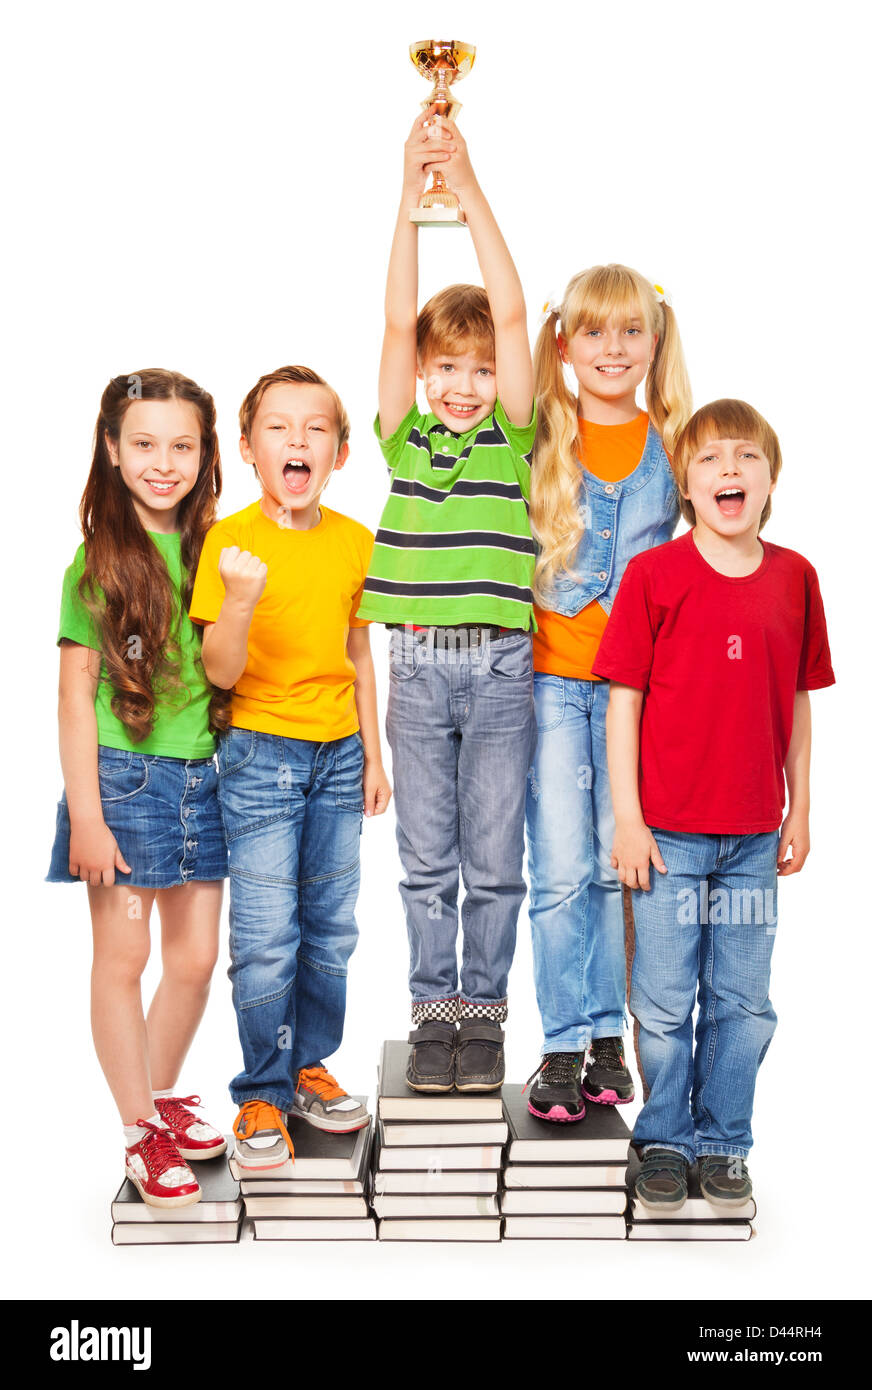 boys and girls shouting and cheering holding their superbowl - Stock Image